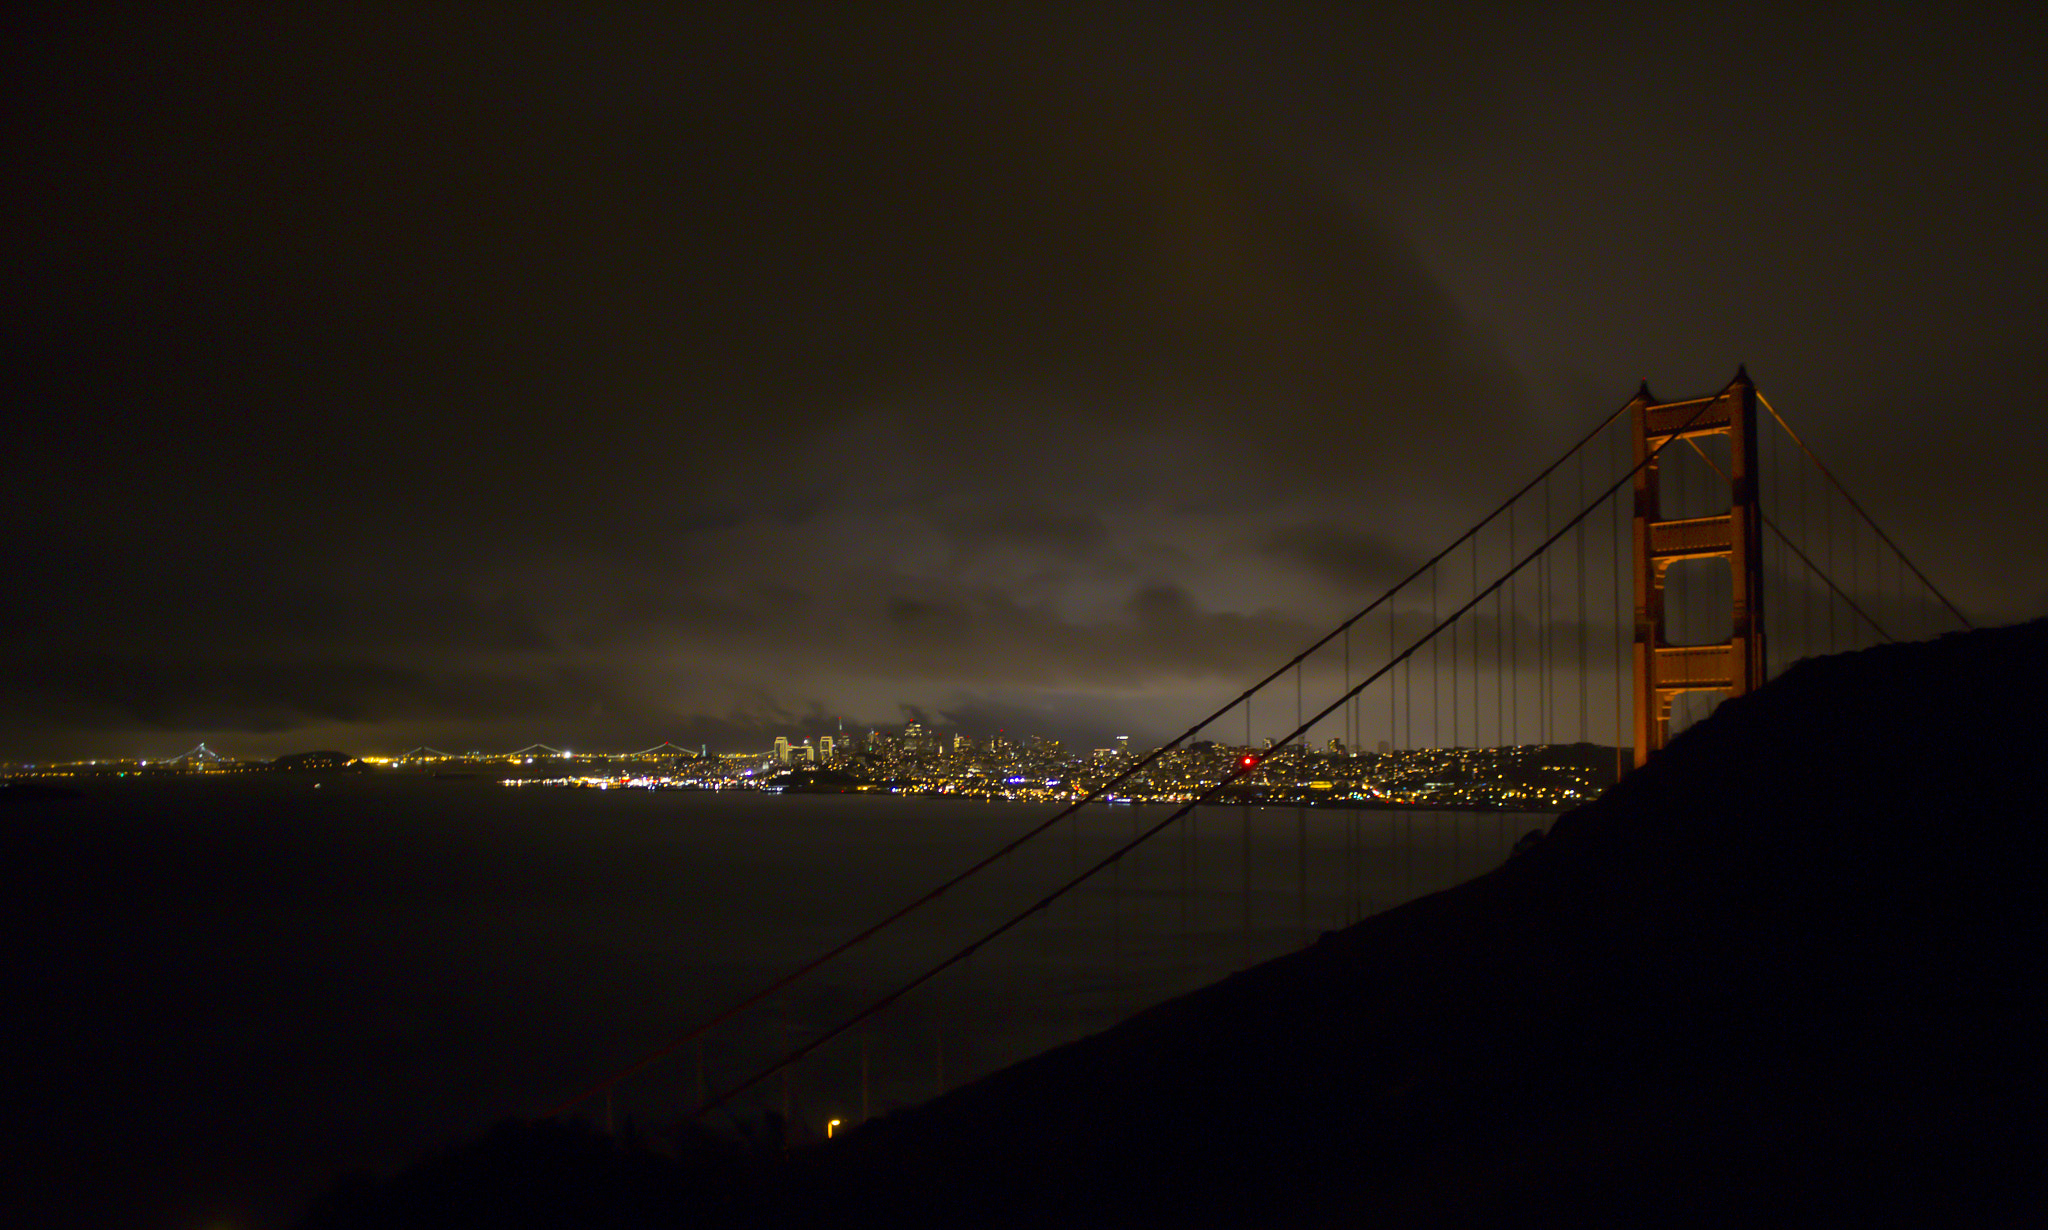 Photograph Golden Gate and San Francisco by Gaurav Chandawale on 500px